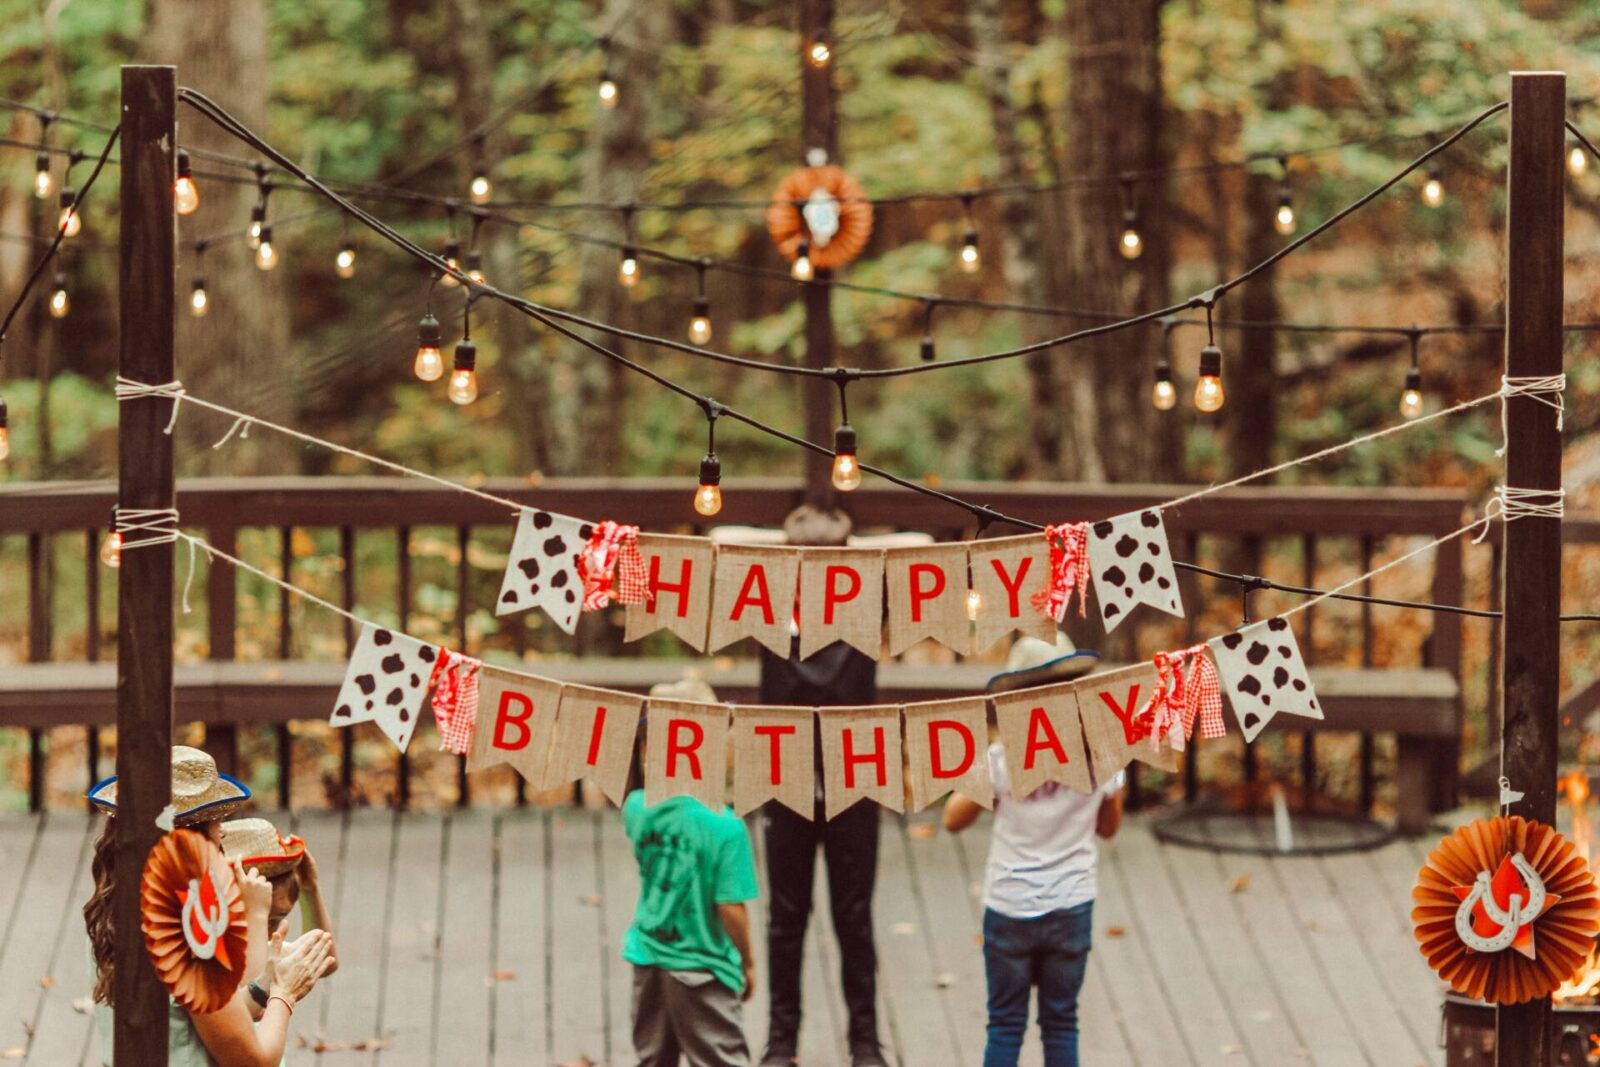 Planning For Your Sister's 18th Birthday? Top Ideas To Make It Memorable